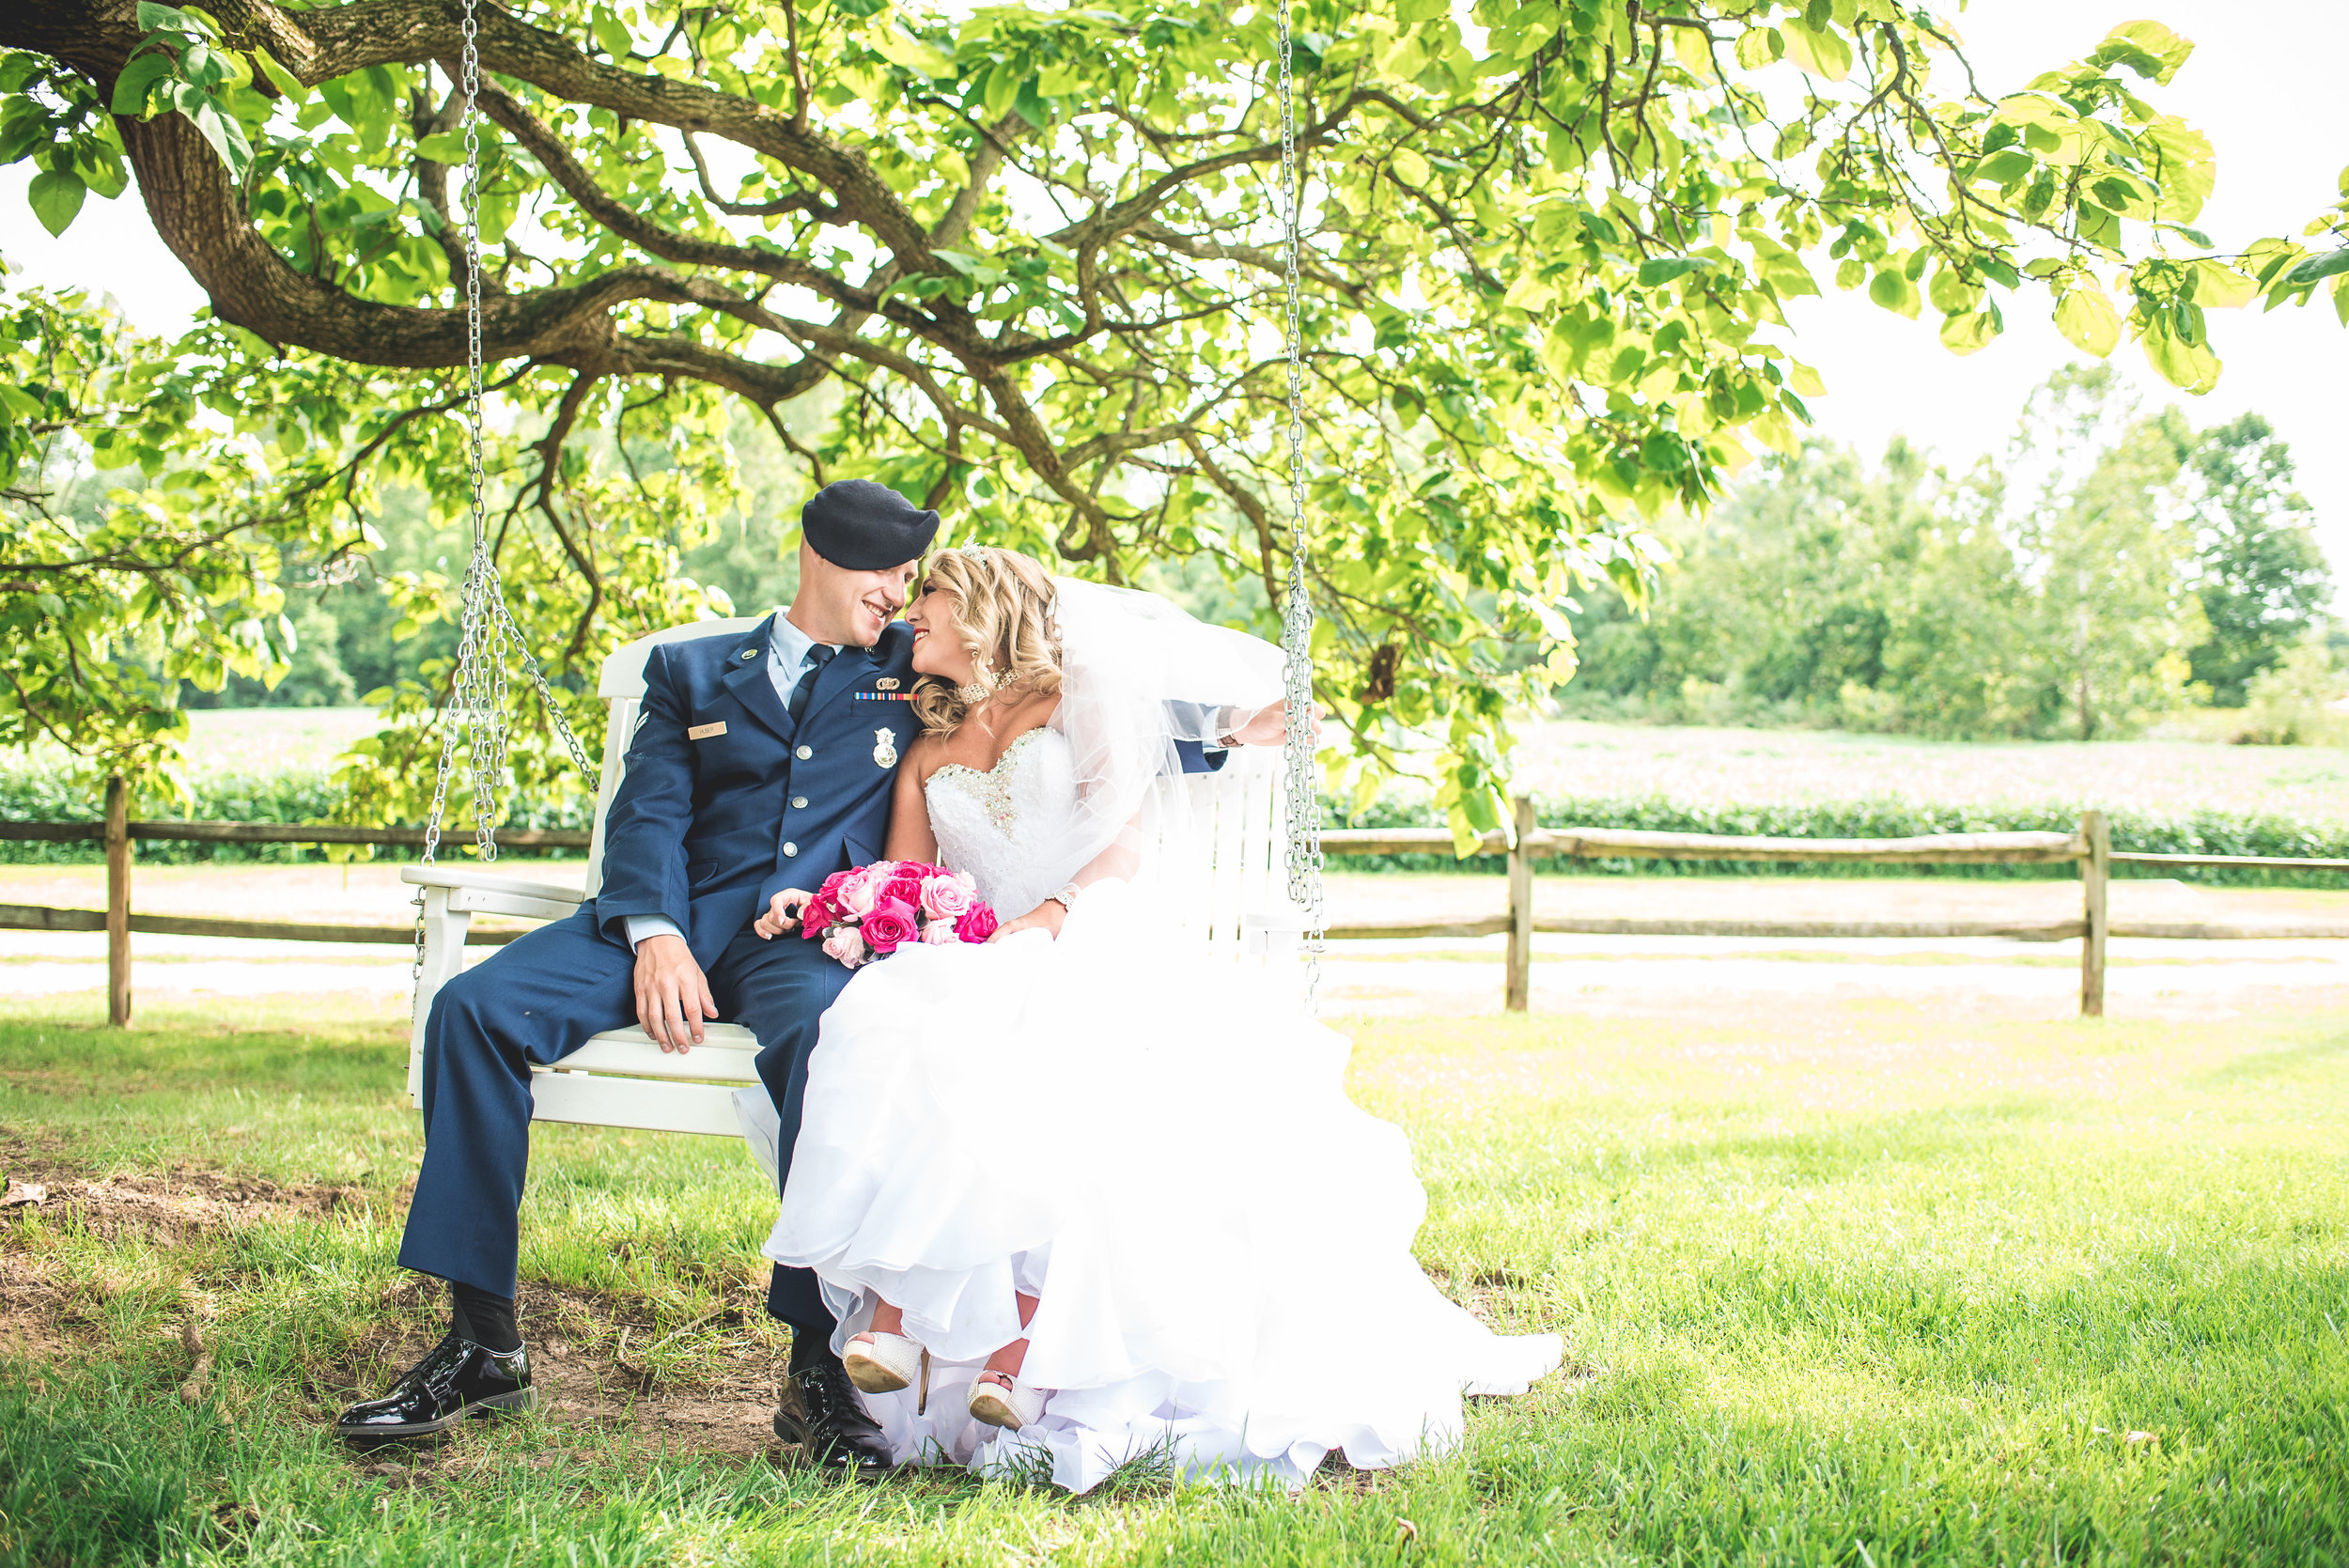 Columbus Ohio Wedding Photographer | Bride and groom in swing